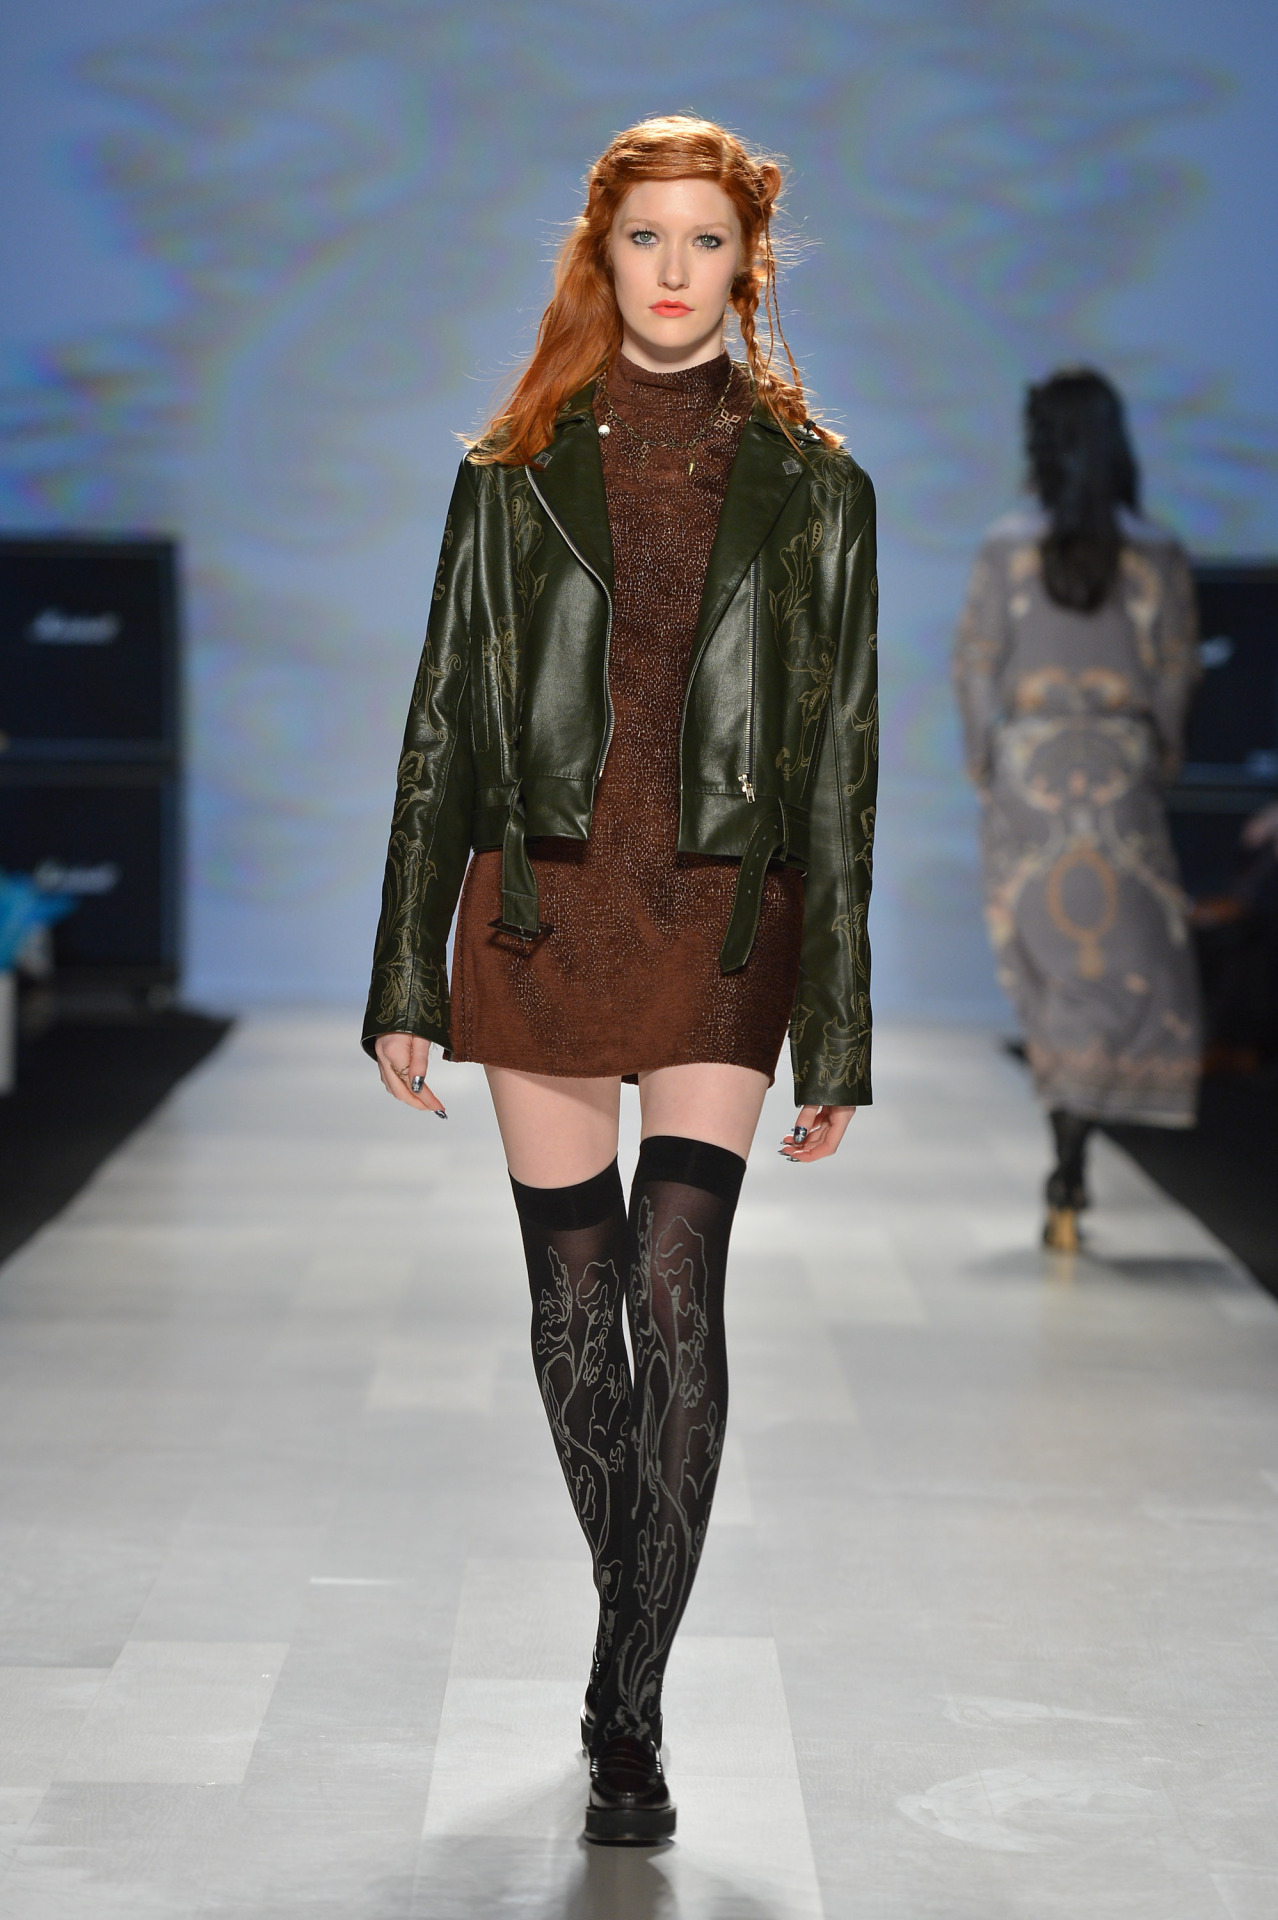 Chloe Comme Parris at Toronto Fashion Week - Fall 2013 / Photographer: George Pimentel See the latest from Canada's capital of fashion.